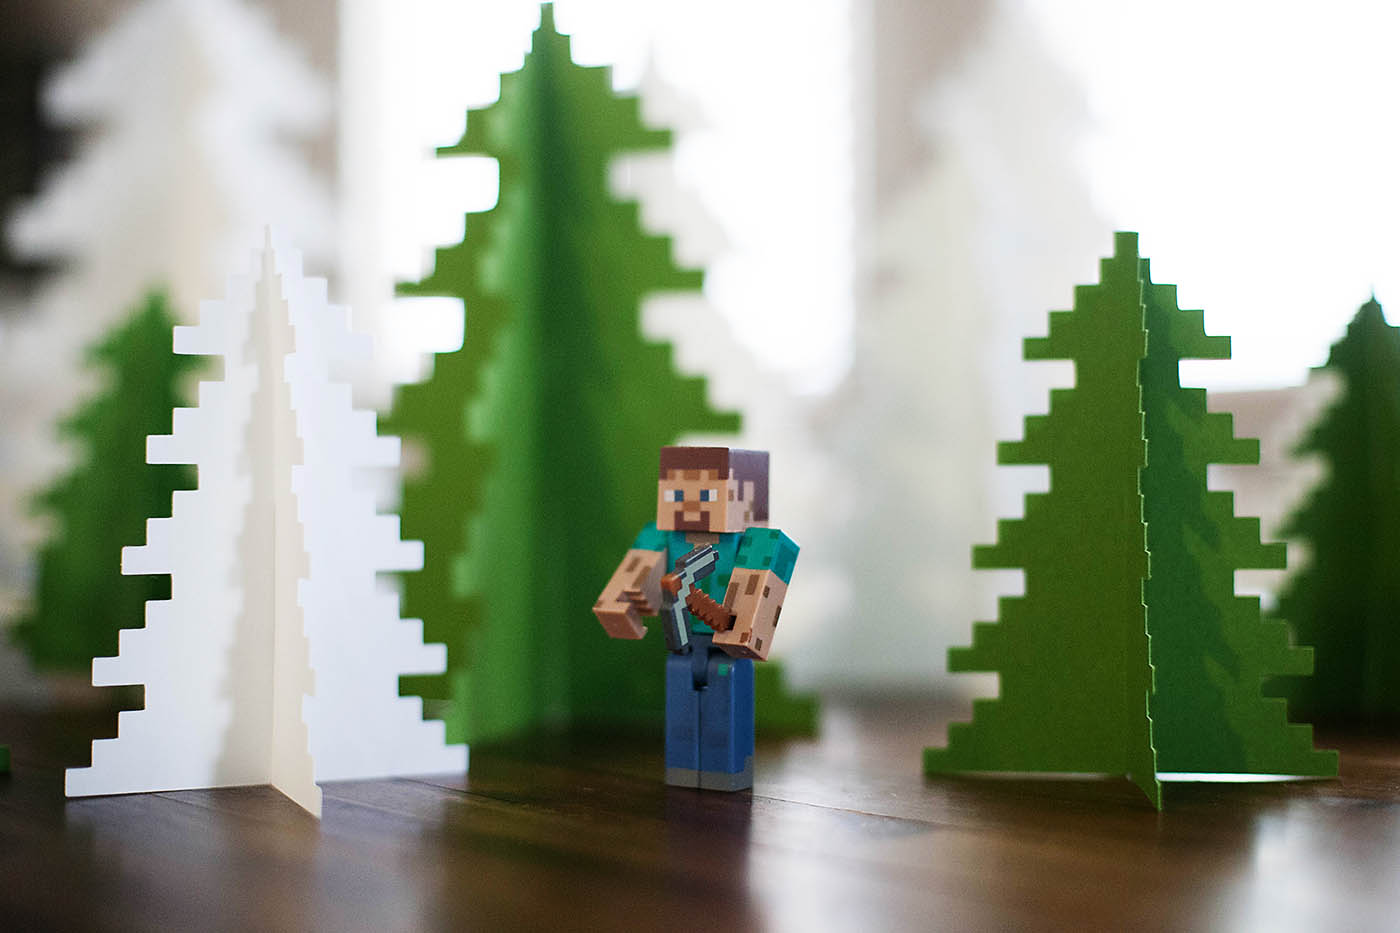 Printable pixelated tree